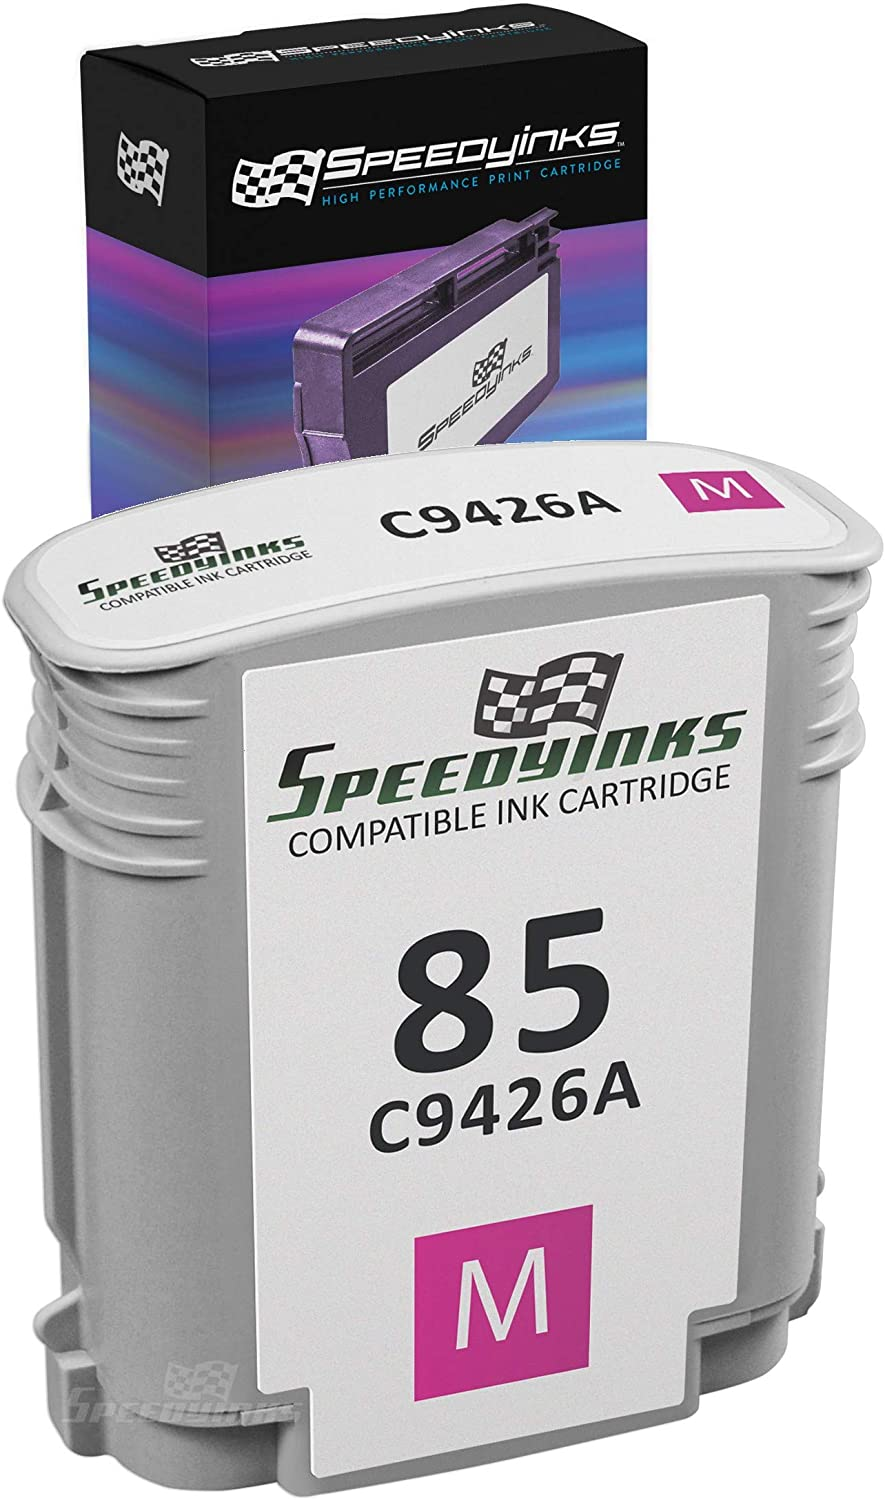 Speedy Inks Remanufactured Ink Cartridge Replacement for HP 85 / C9426A (Magenta)